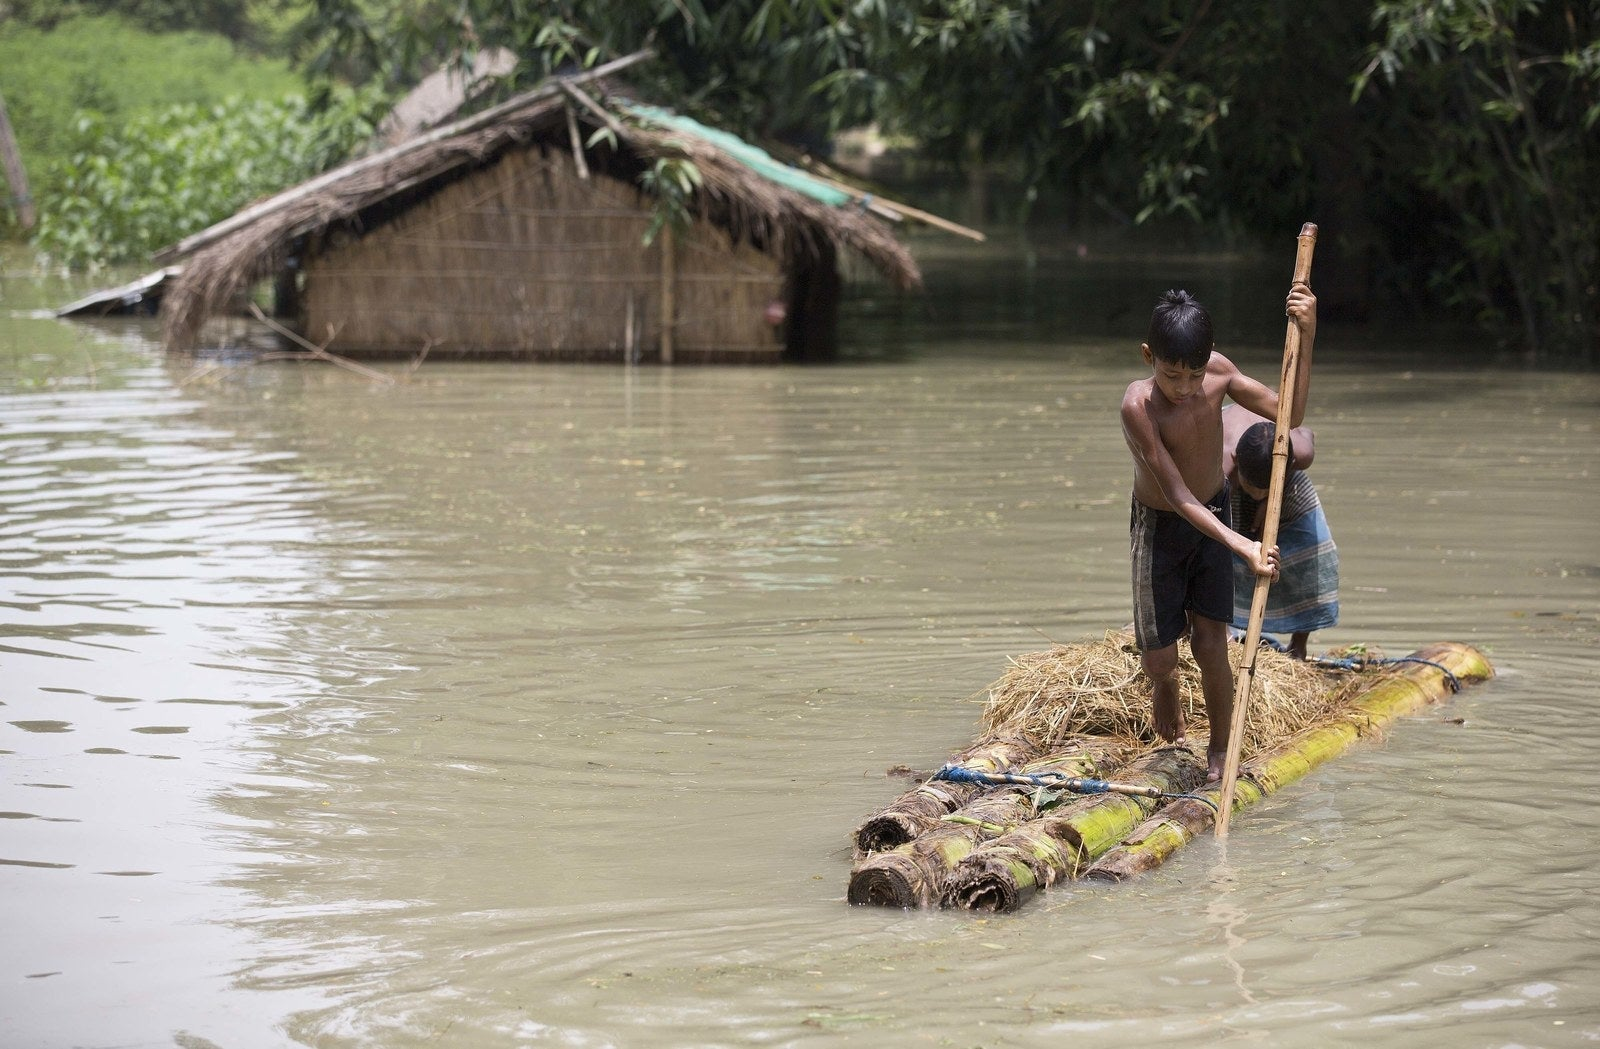 Two boys stand on a banana raft in Assam, India. At least 850 people have been killed in the flood-affected states across the country.